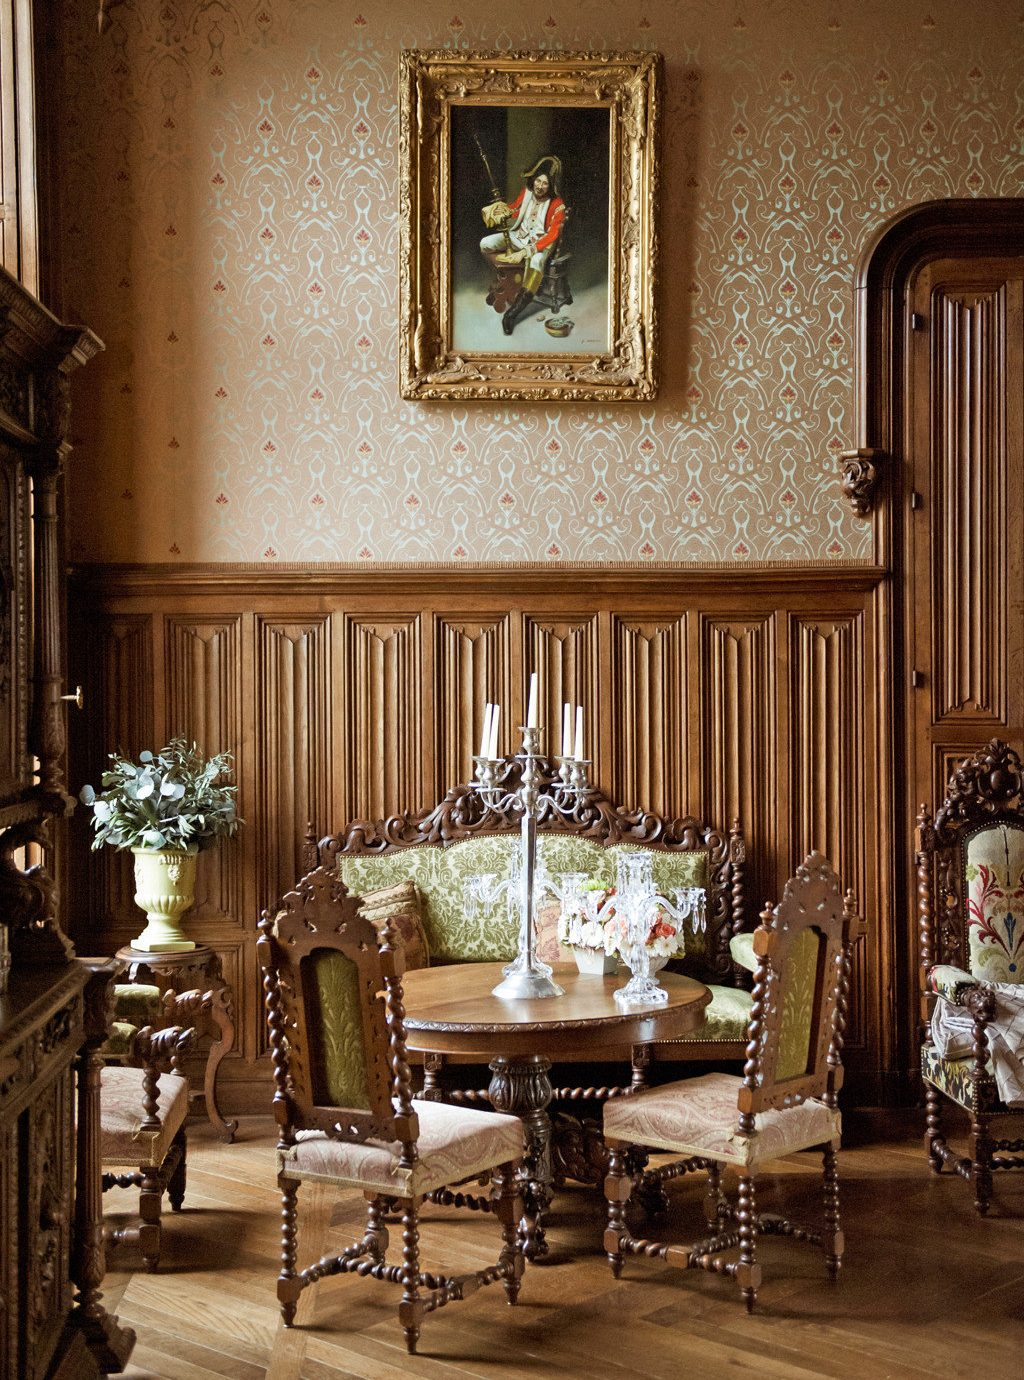 Boutique Country Dining Drink Eat Elegant Luxury Romance Romantic home living room restaurant